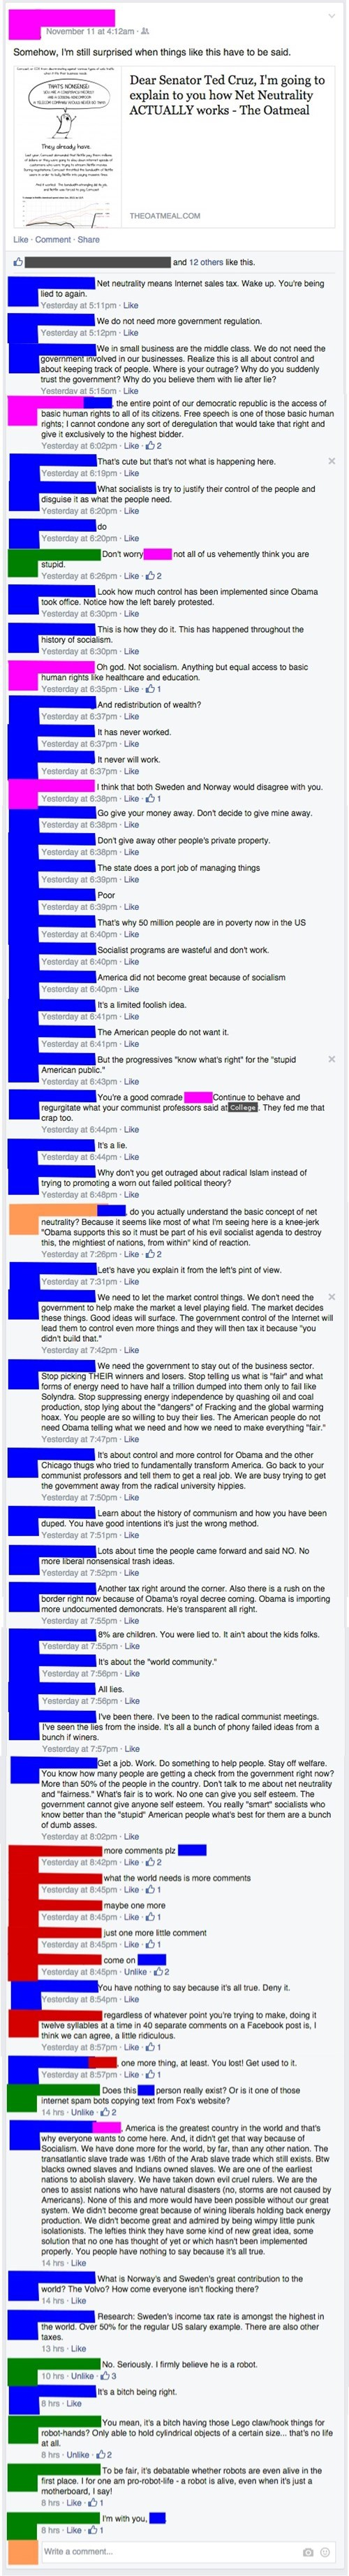 facebook-fail-politics-and-facebook-mix-perfectly